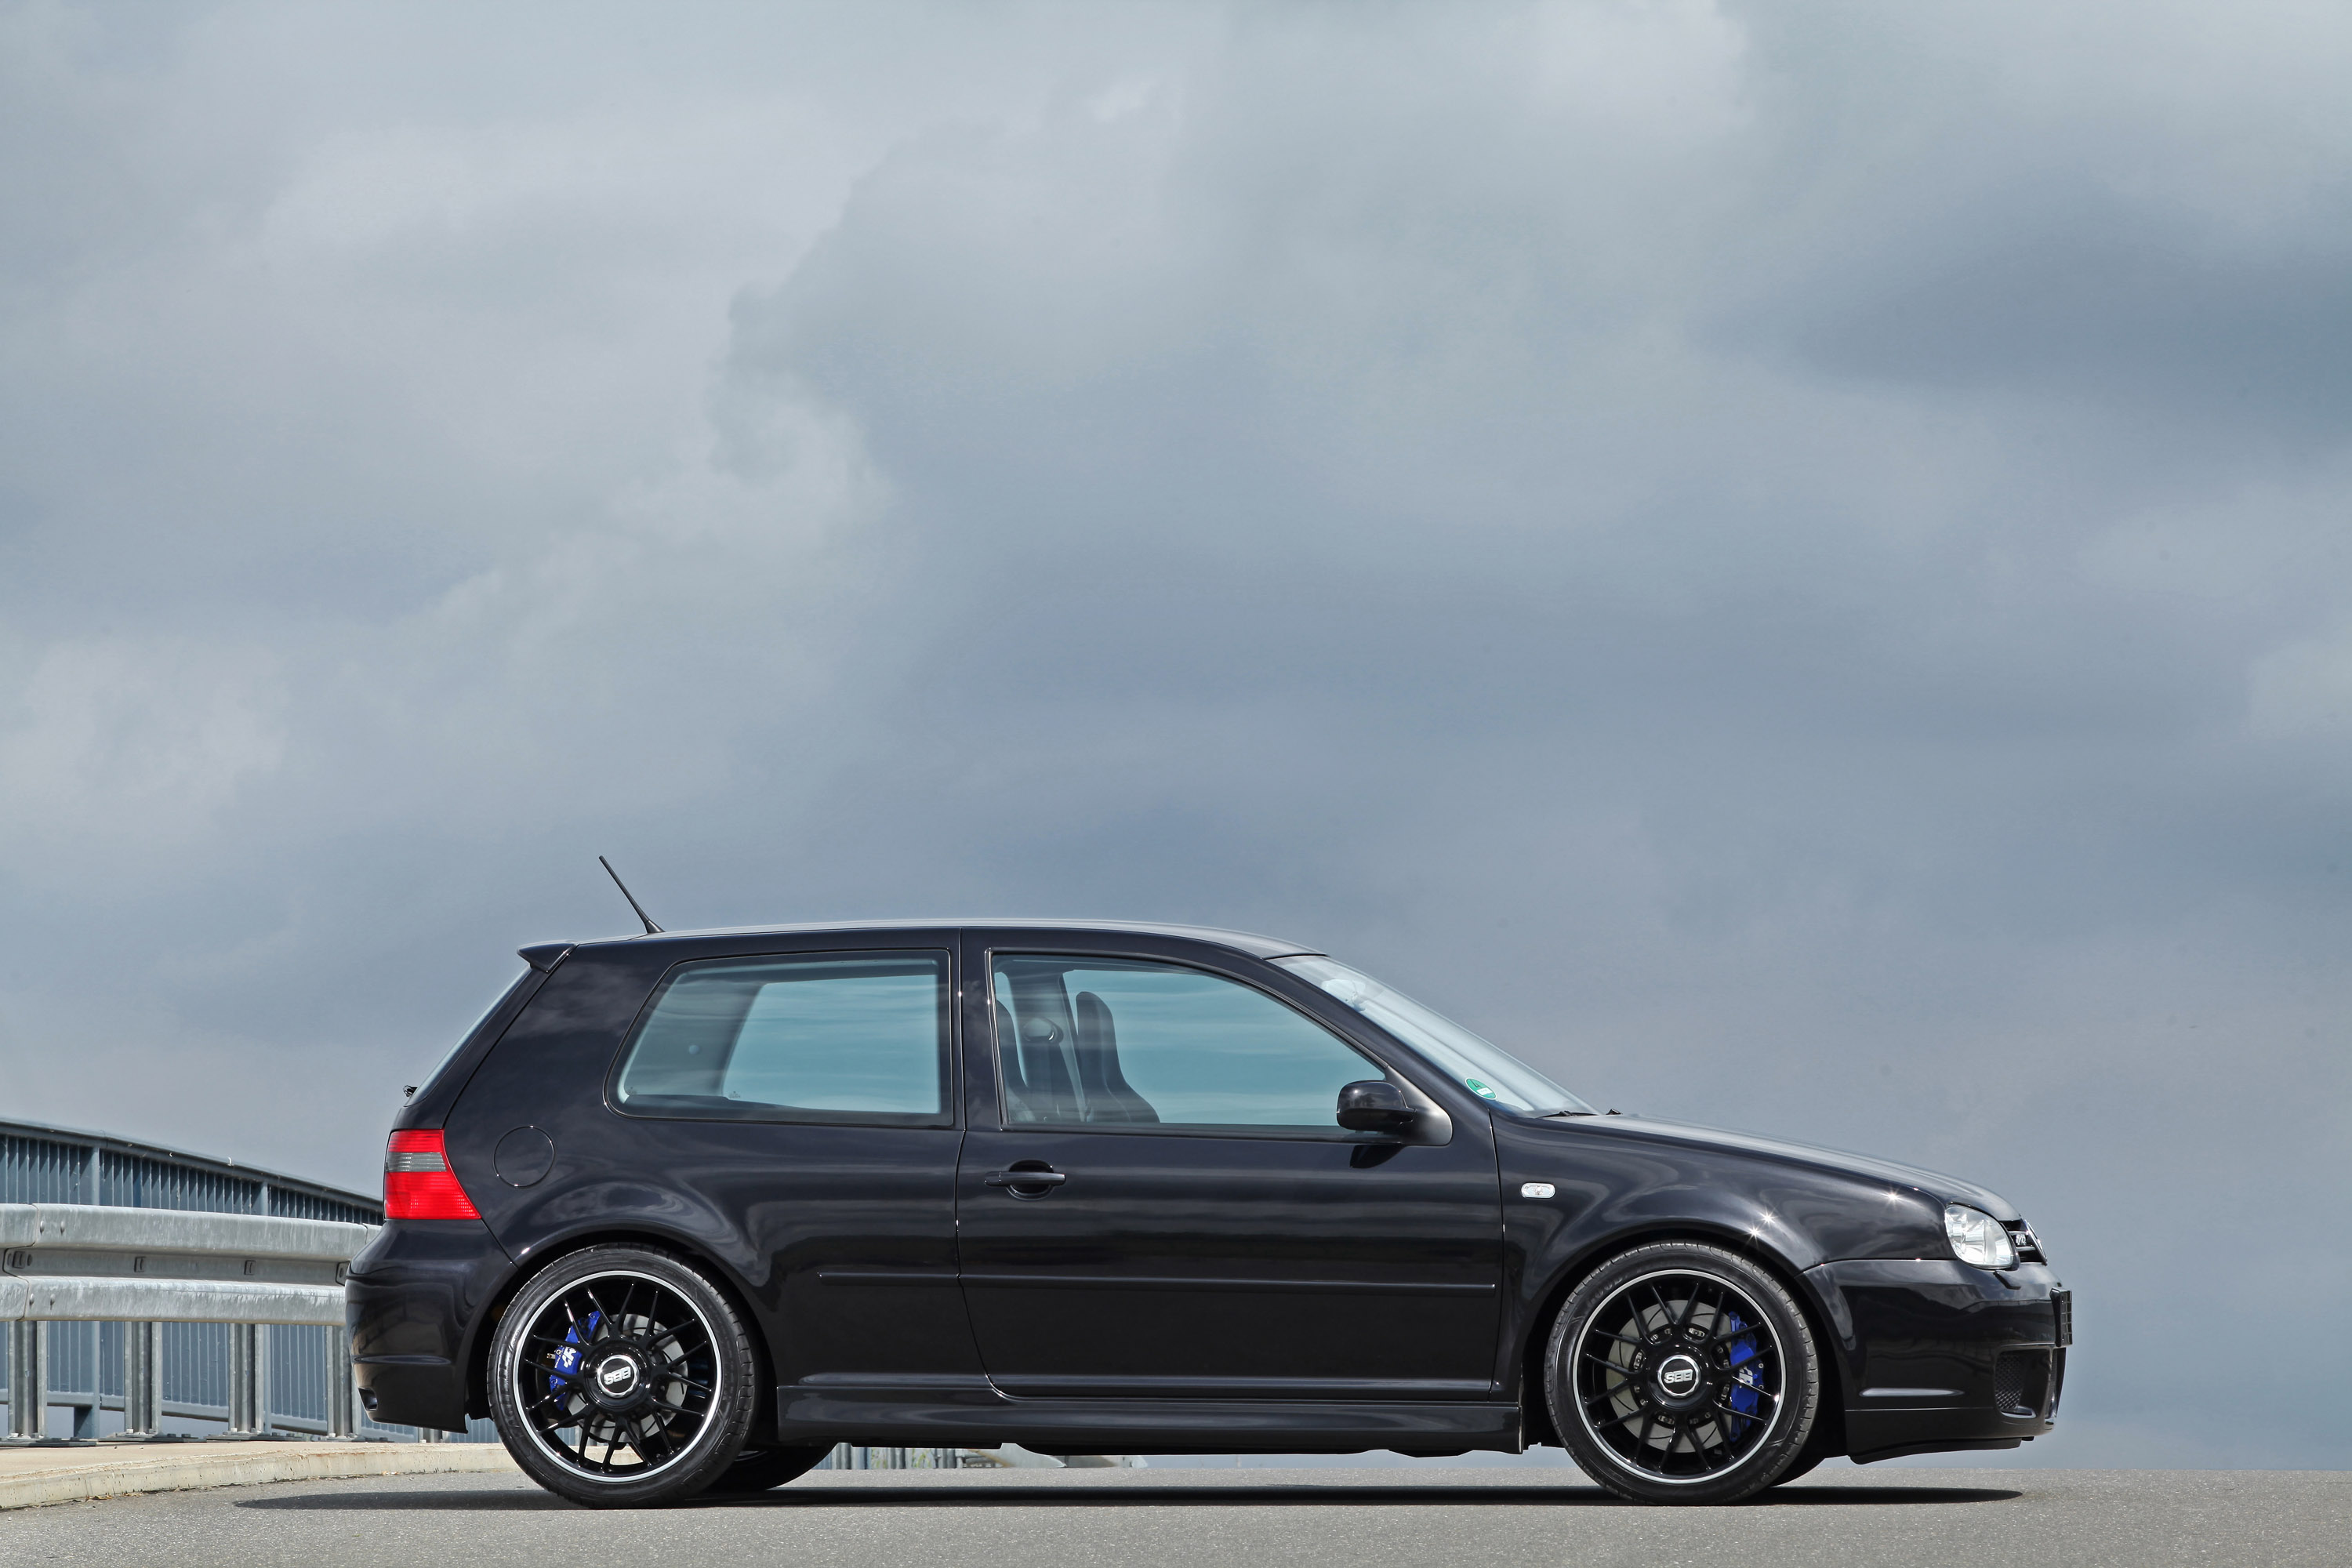 volkswagen golf iv r32 by hperformance 650hp. Black Bedroom Furniture Sets. Home Design Ideas